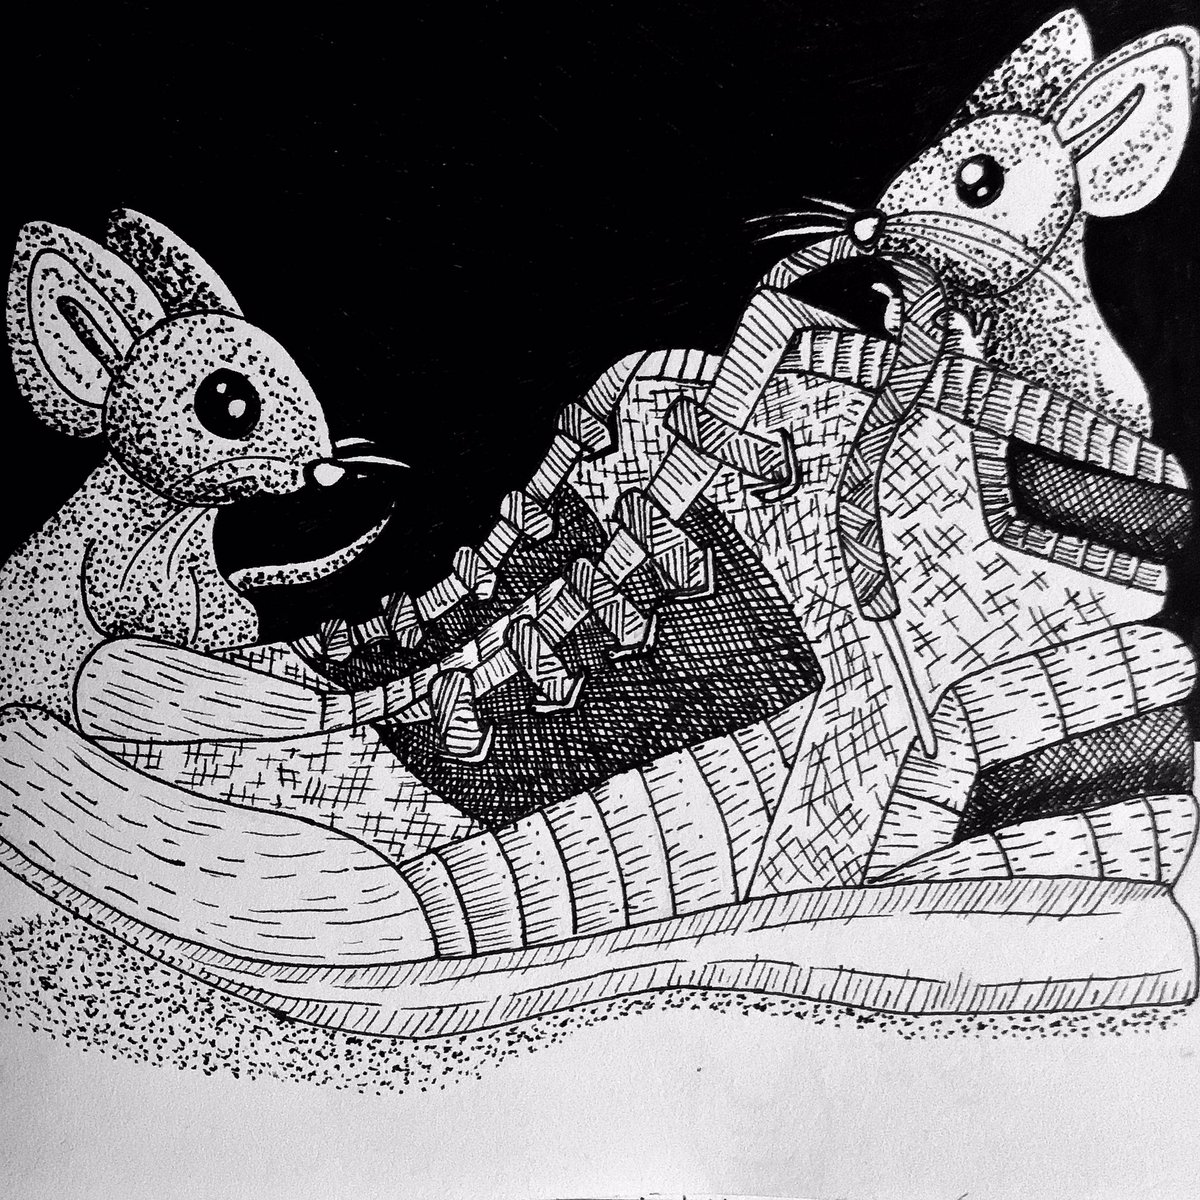 Inktober Week 44 of 52 Prompt: 'Shoes' • These little mice are nestling in a pair of SHOES for the night. • (In the process of catching up on lost Inktober weeks) • • @inktober @jakeparker #inktober #inktober52 #mice #blackandwhite #line #drawing #art #illustration #shoes